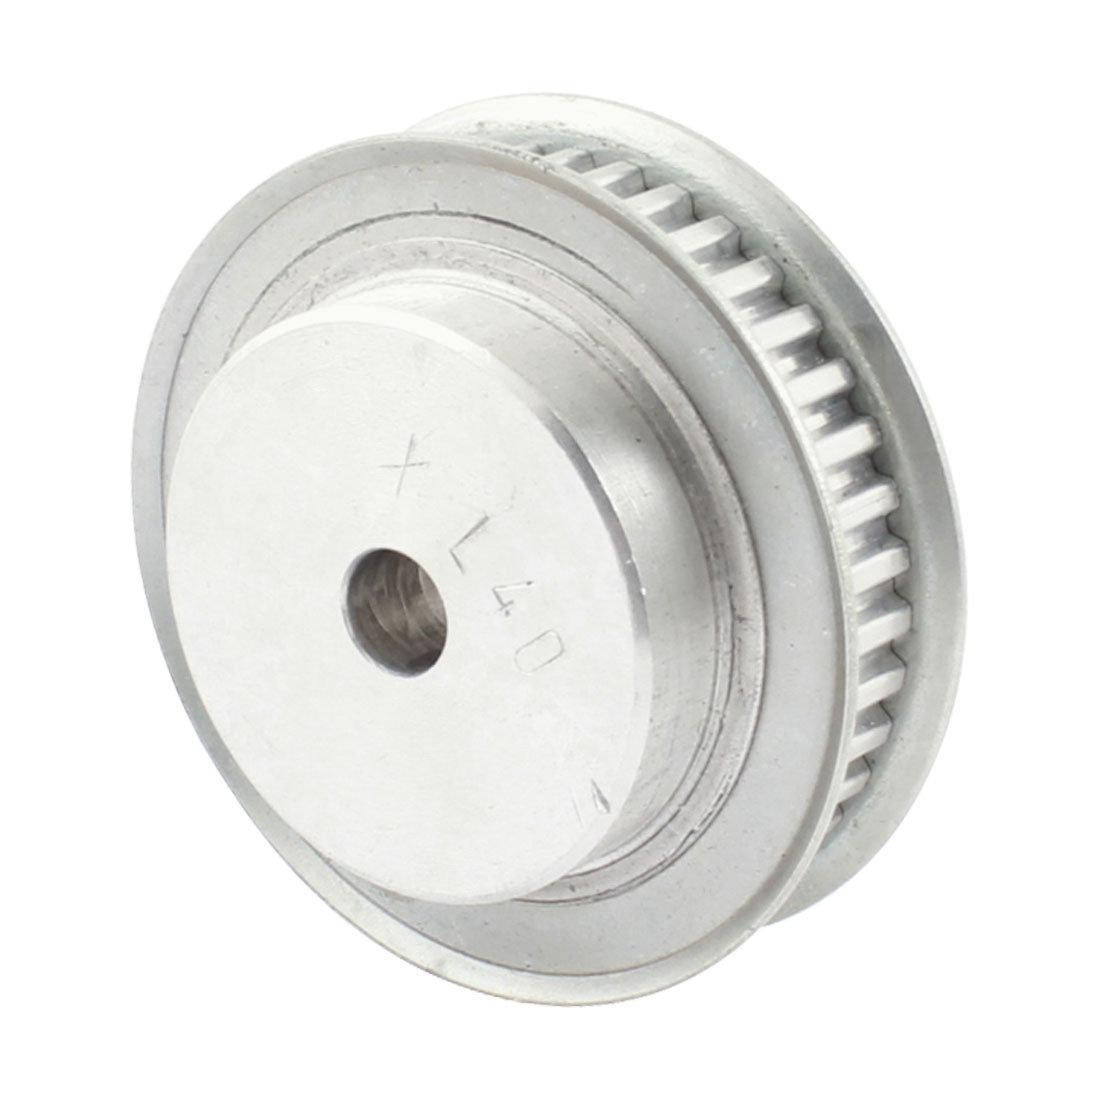 "XL40 037 40-Teeth 10mm Pilot Bore Aluminum Alloy Dual Flange Groove Synchronous Timing Belt Pulley 0.37"" Width"